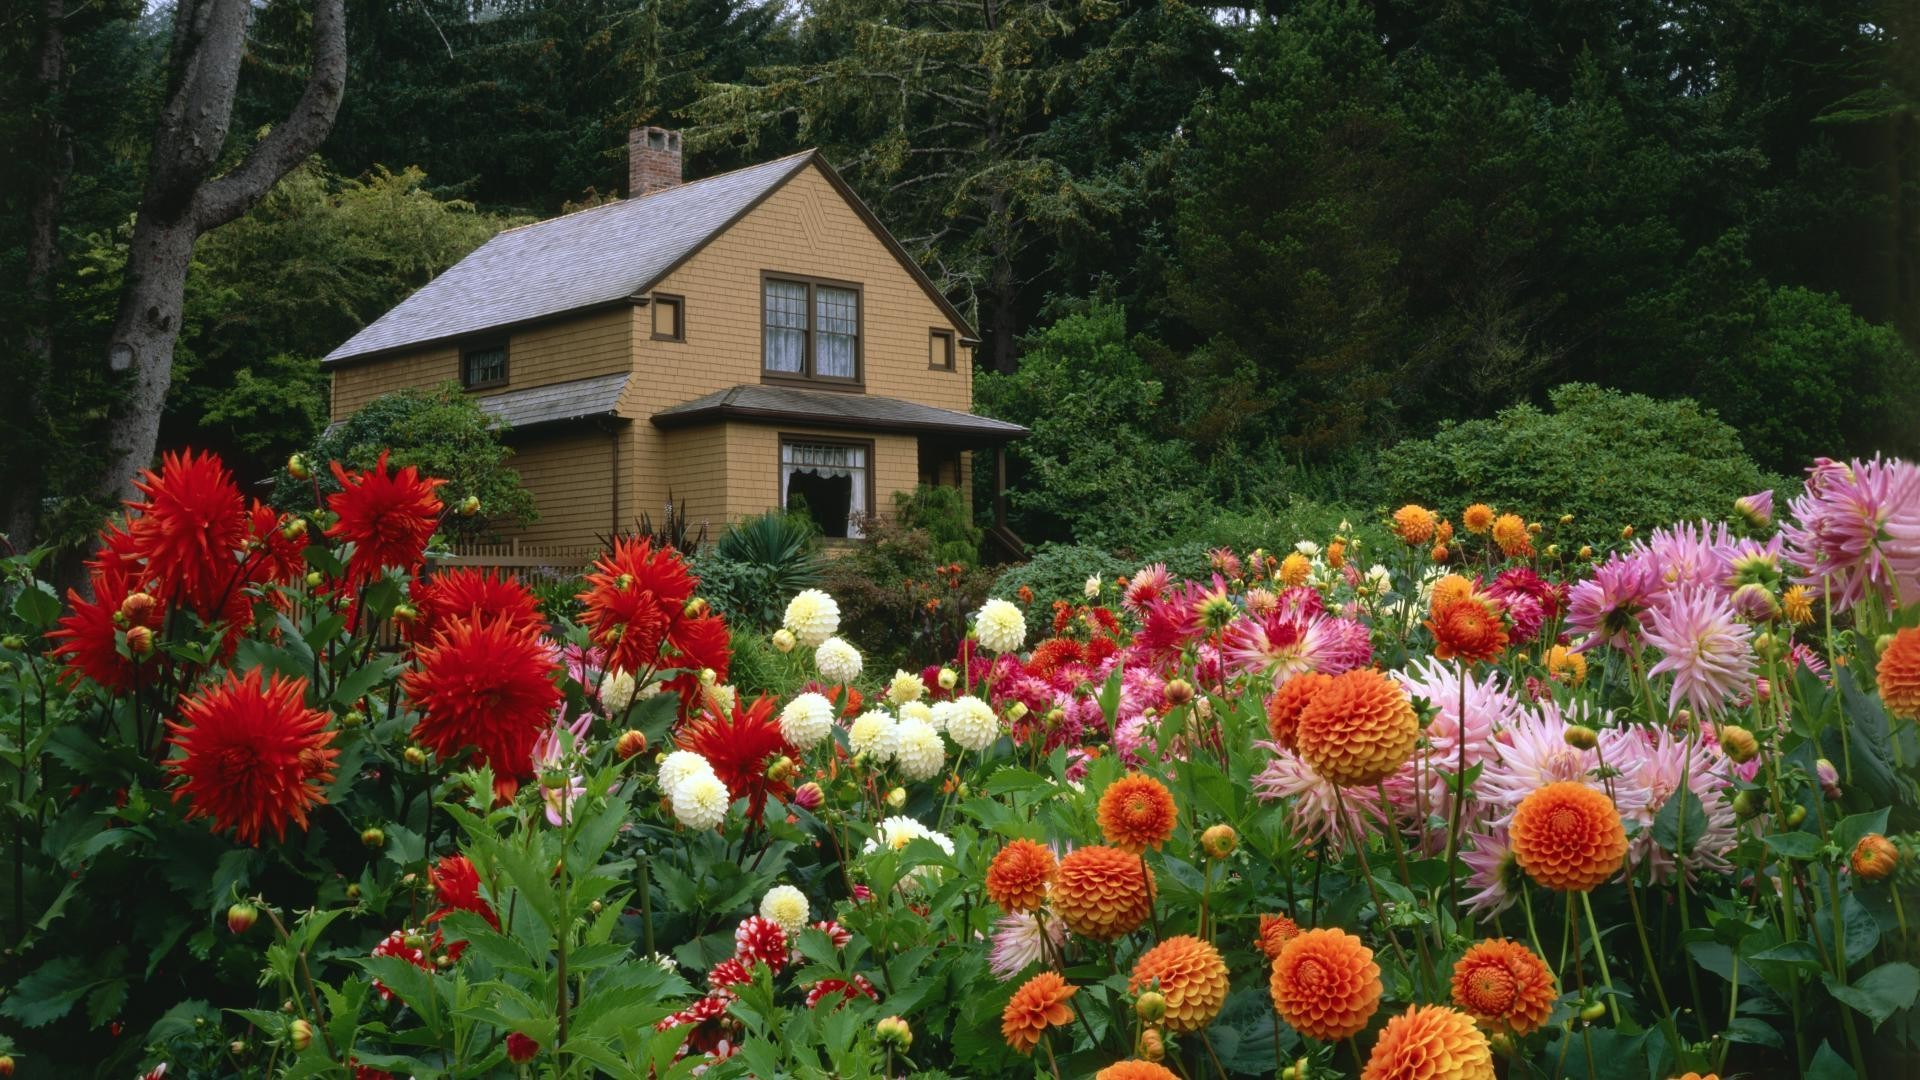 Beautiful dahlia garden next to the house